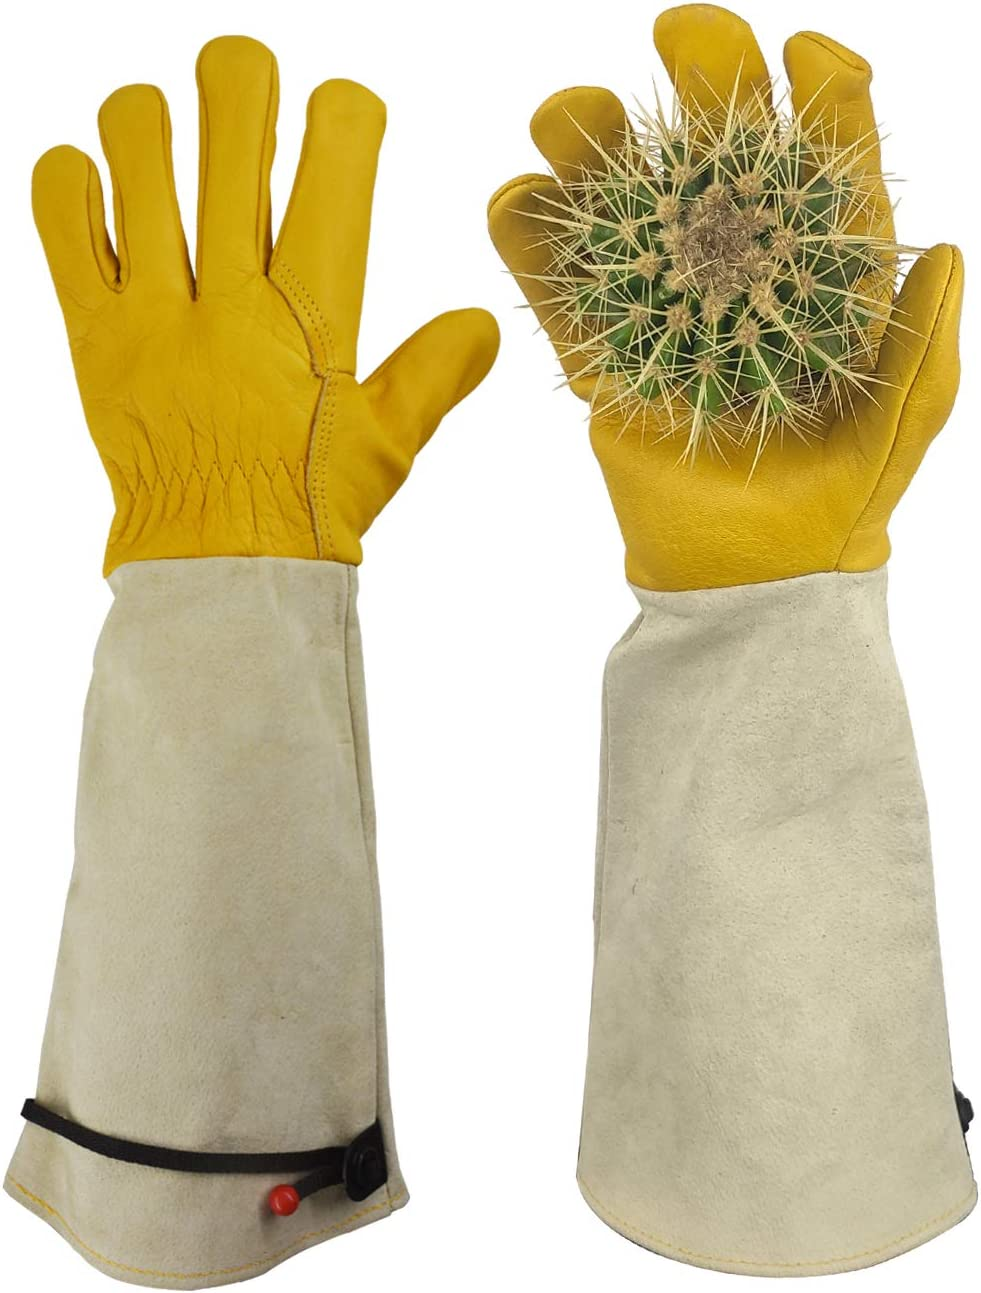 GLOSAV Gardening Gloves, Professional Puncture Proof Gloves for Rose Pruning & Cactus Trimming, Long Leather Garden Gloves Gifts for Women & Men- Full Grain Cowhide & Pigskin (Extra Large)